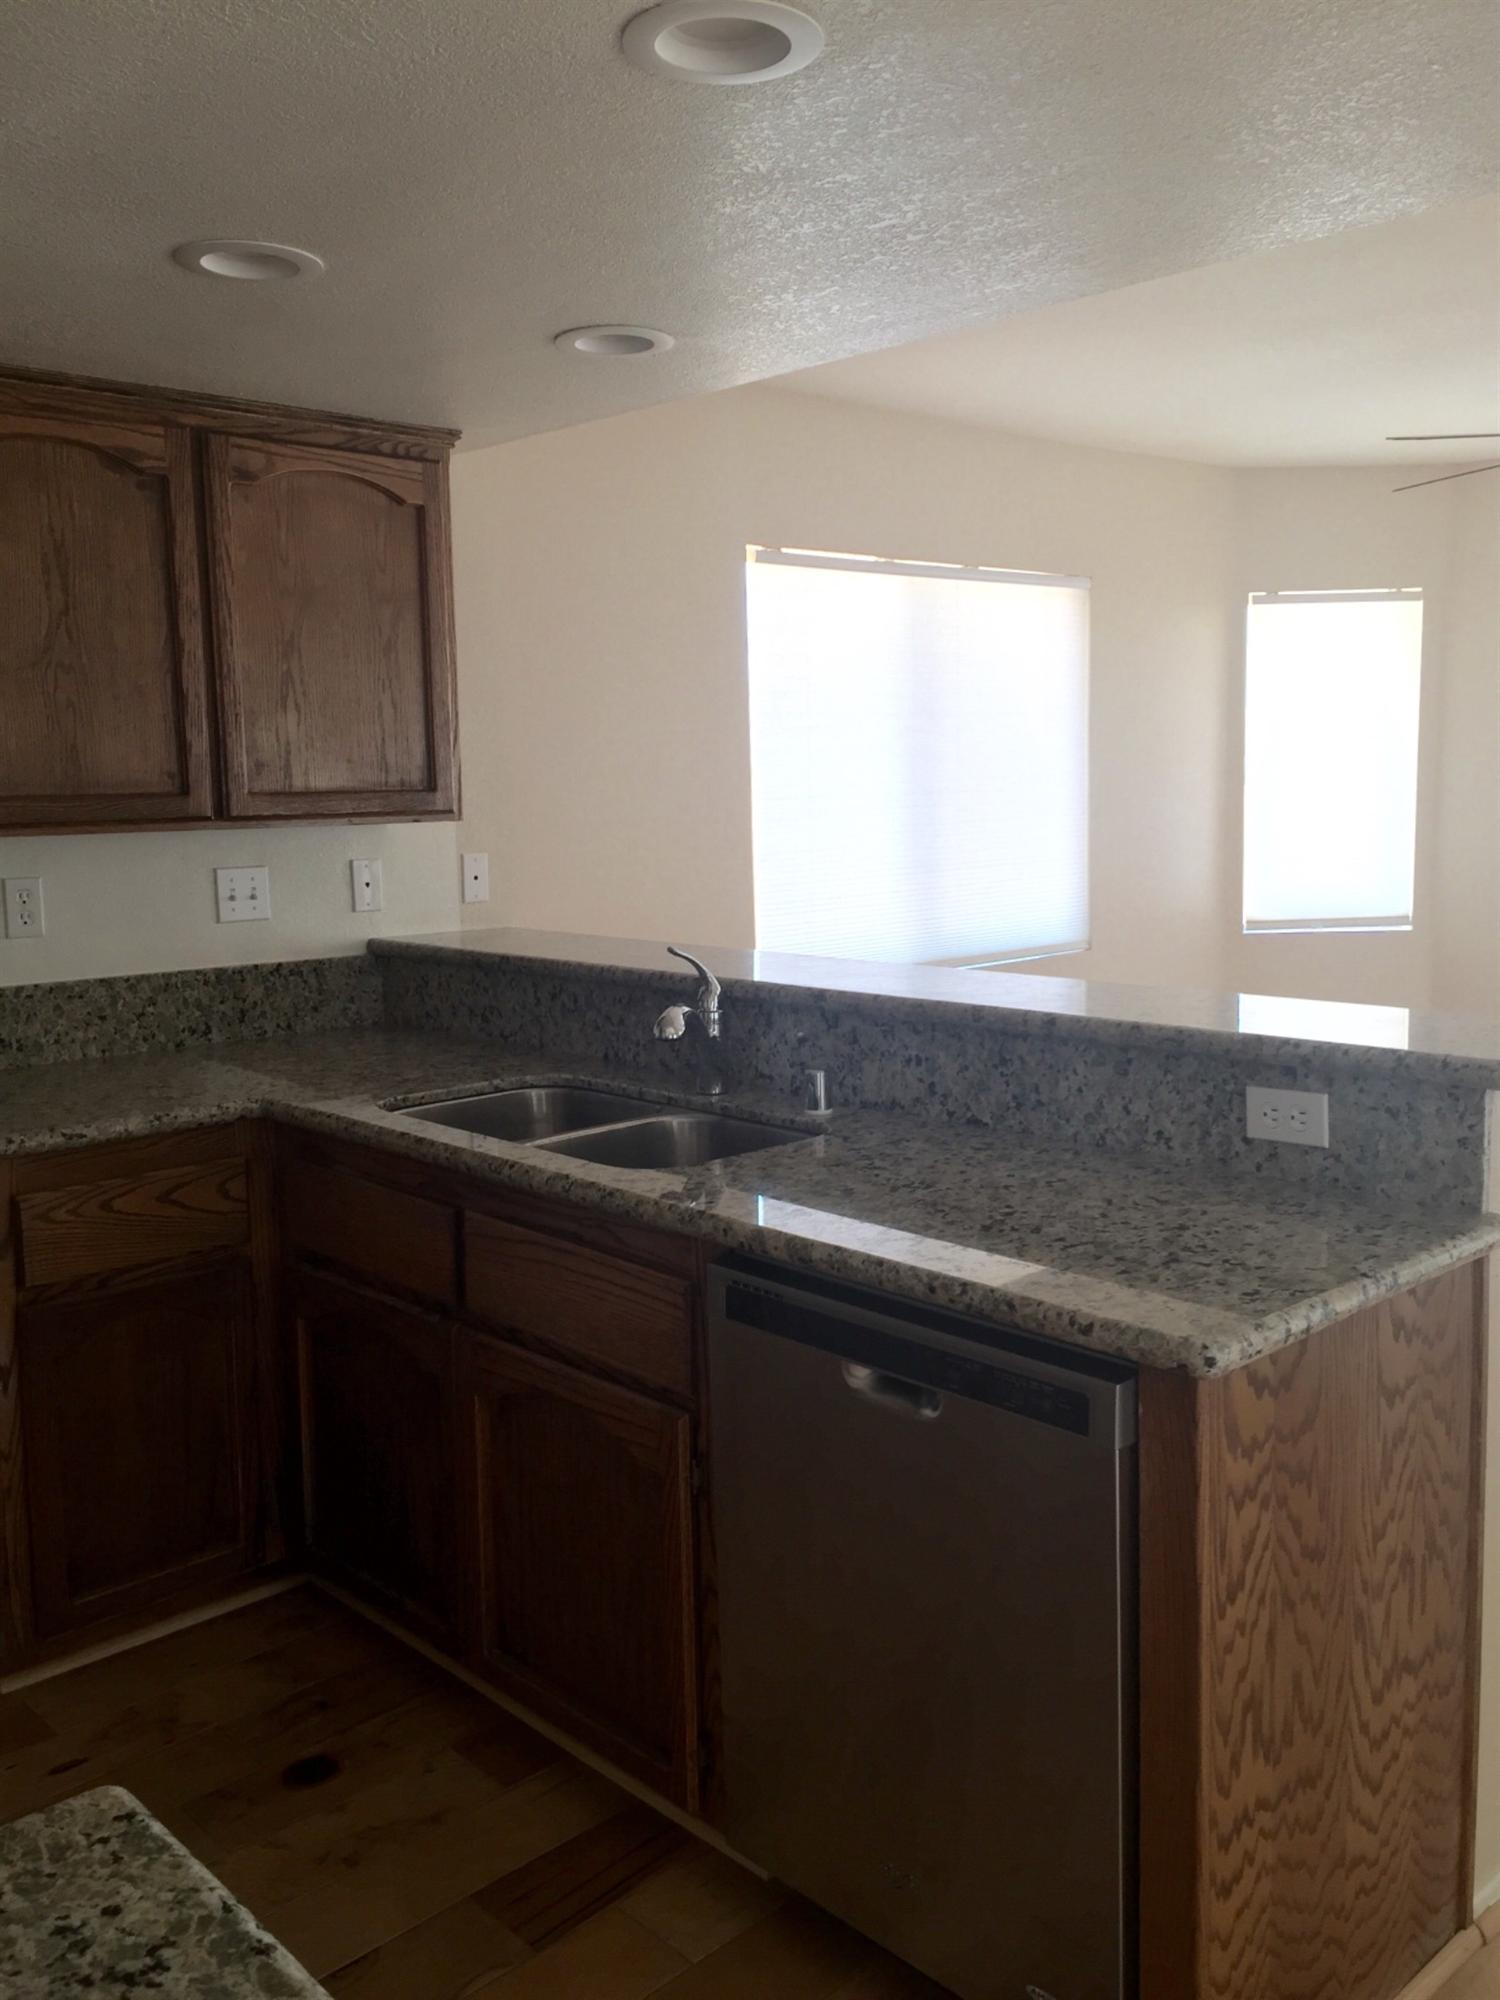 22474 South Road, Apple Valley, CA 92307